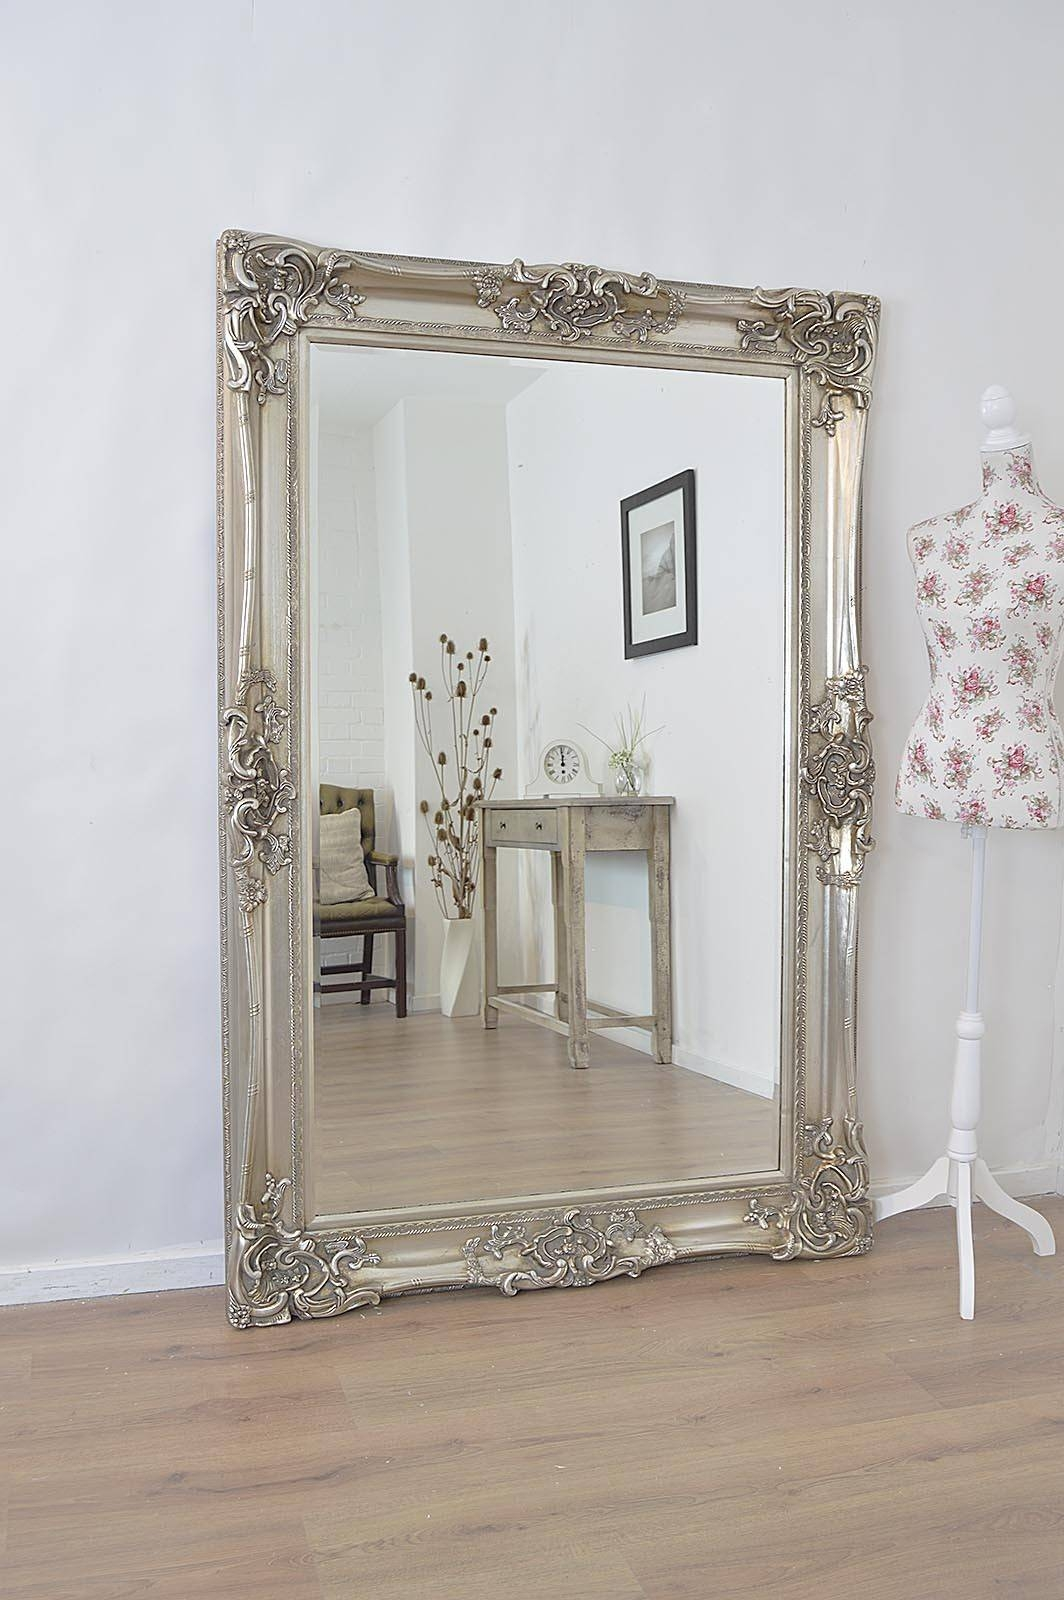 Exceptional Antique Wall Mirror Styles Plus Large Black Framed intended for Huge Antique Mirrors (Image 5 of 15)